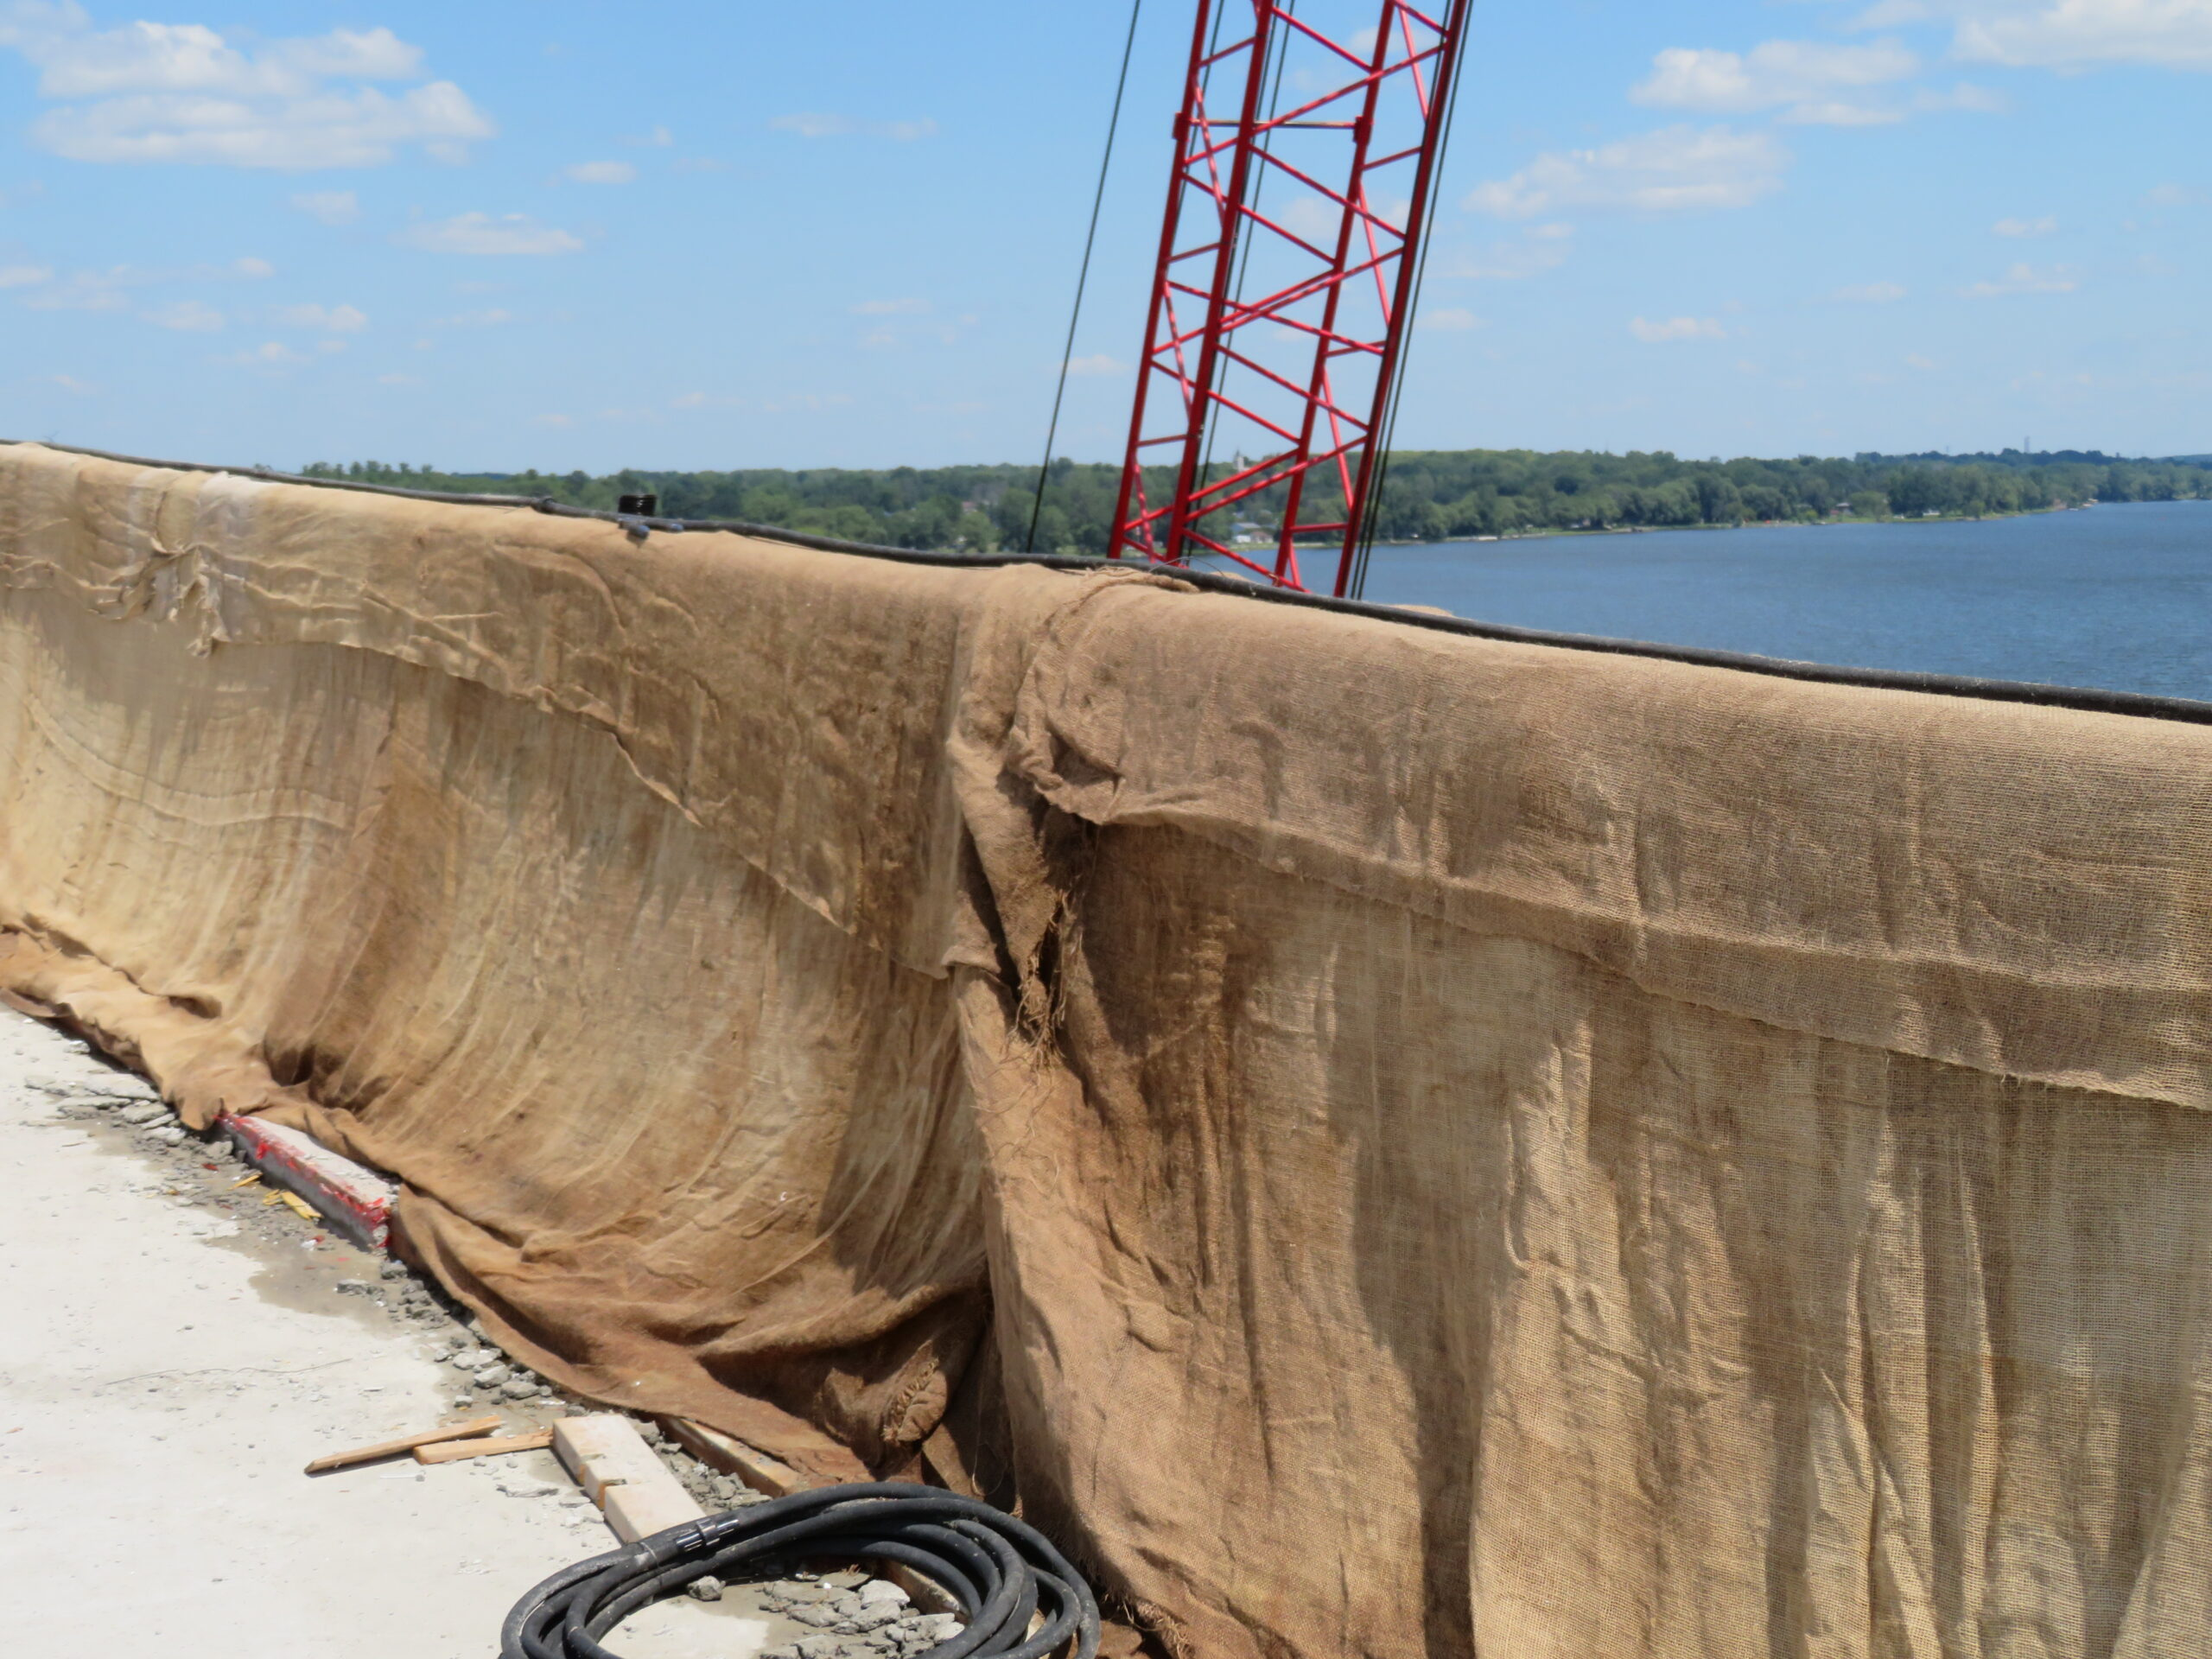 Wet burlap covering new barrier wall section